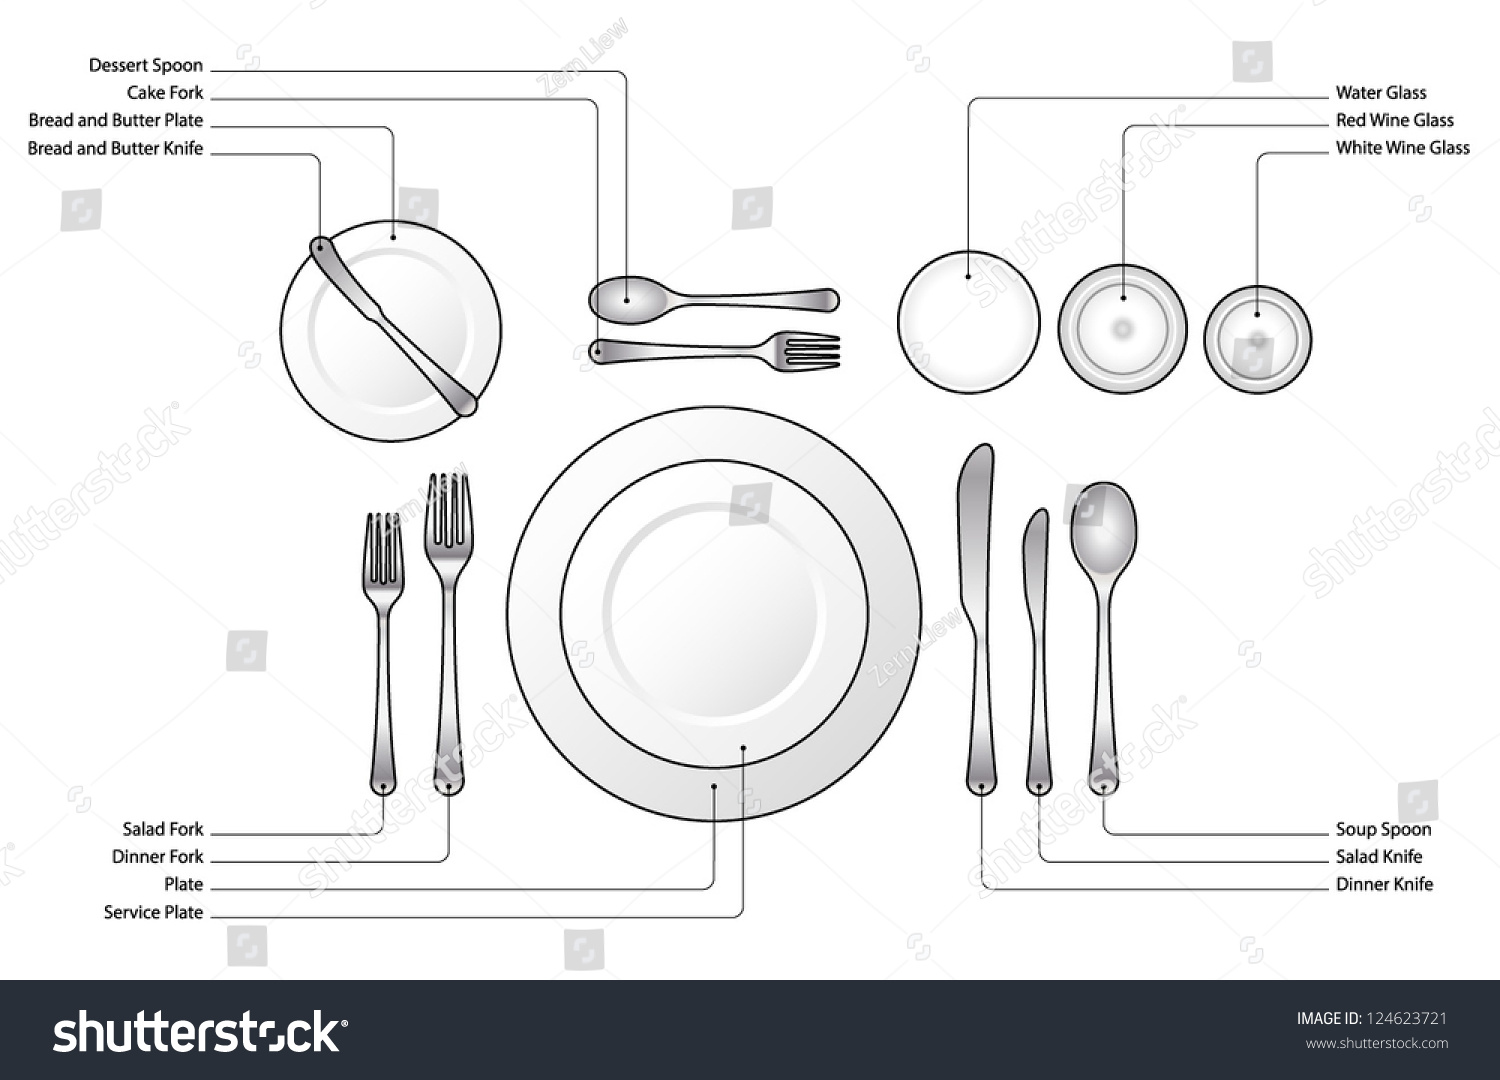 Formal dinner table setting etiquette - Diagram Place Setting For A Formal Dinner With Soup And Salad Courses With Text